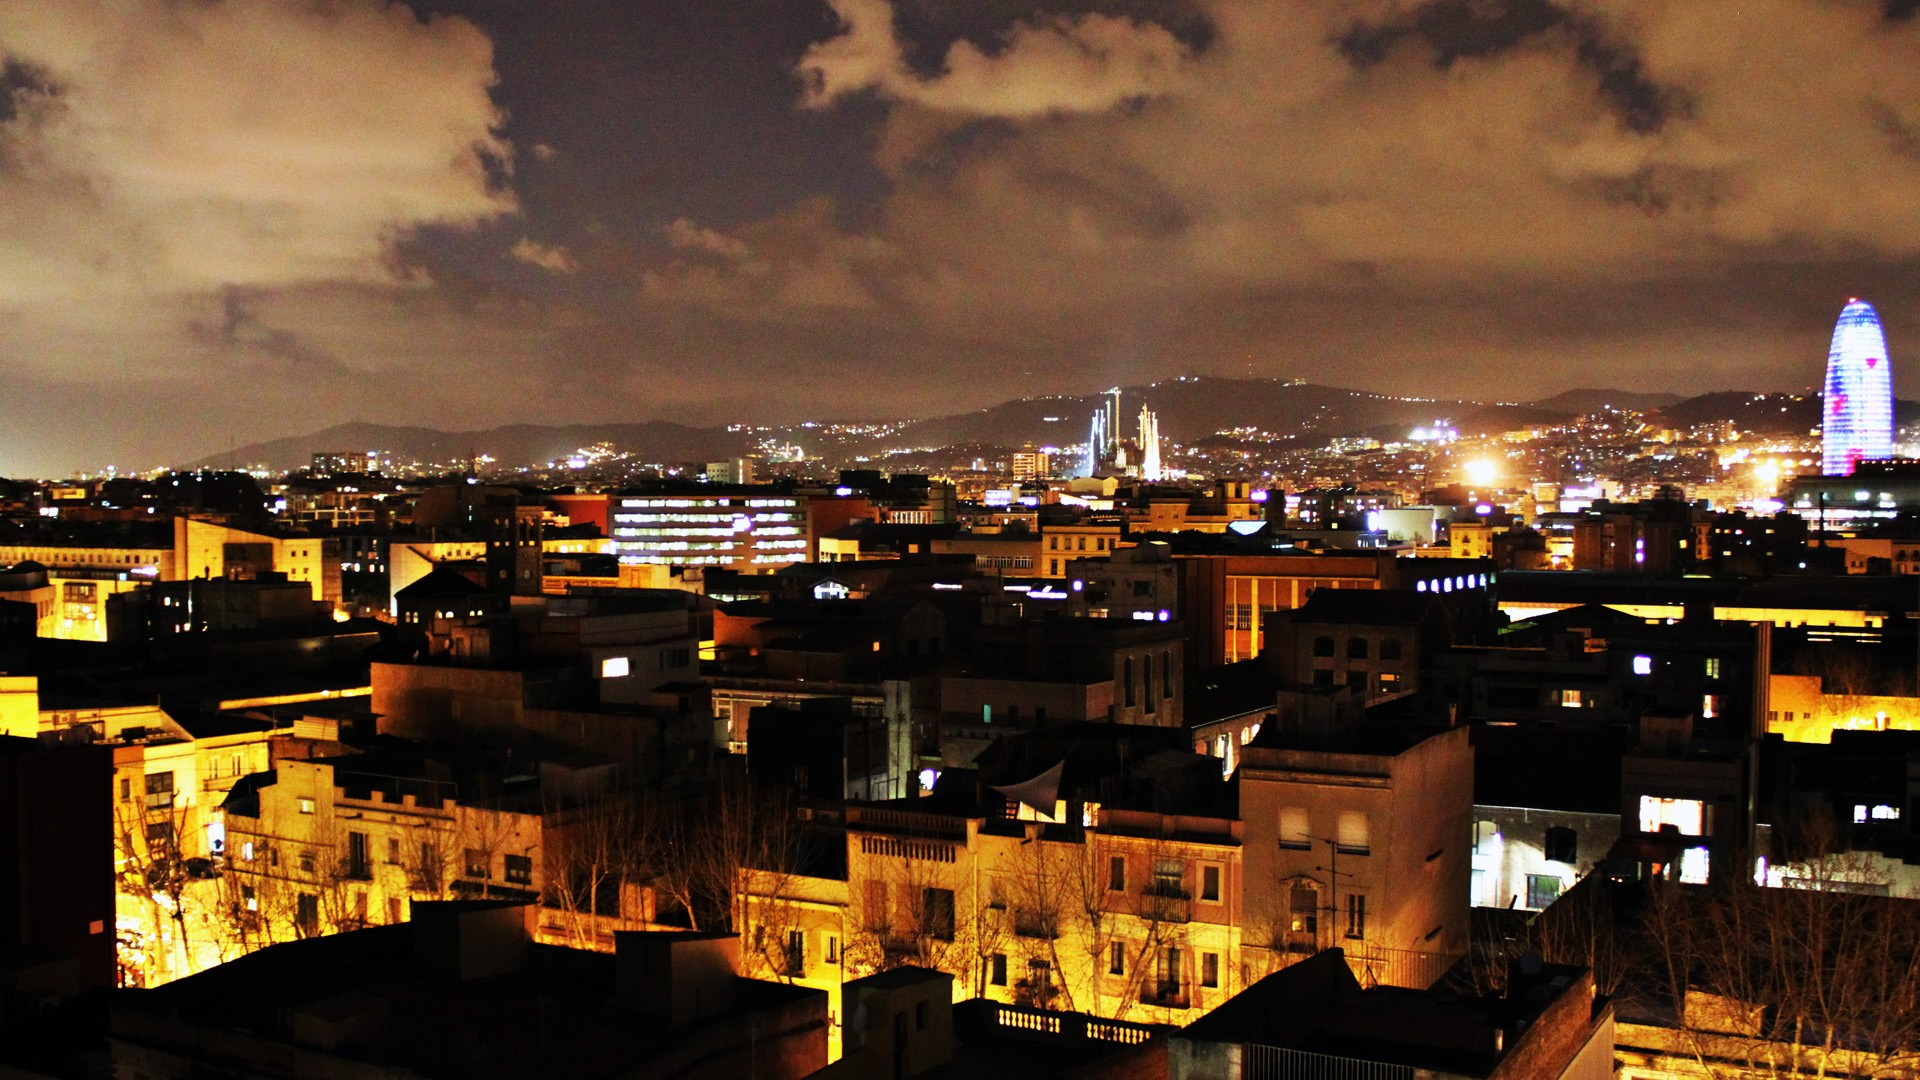 Barcelona Wallpapers, Pictures, Images